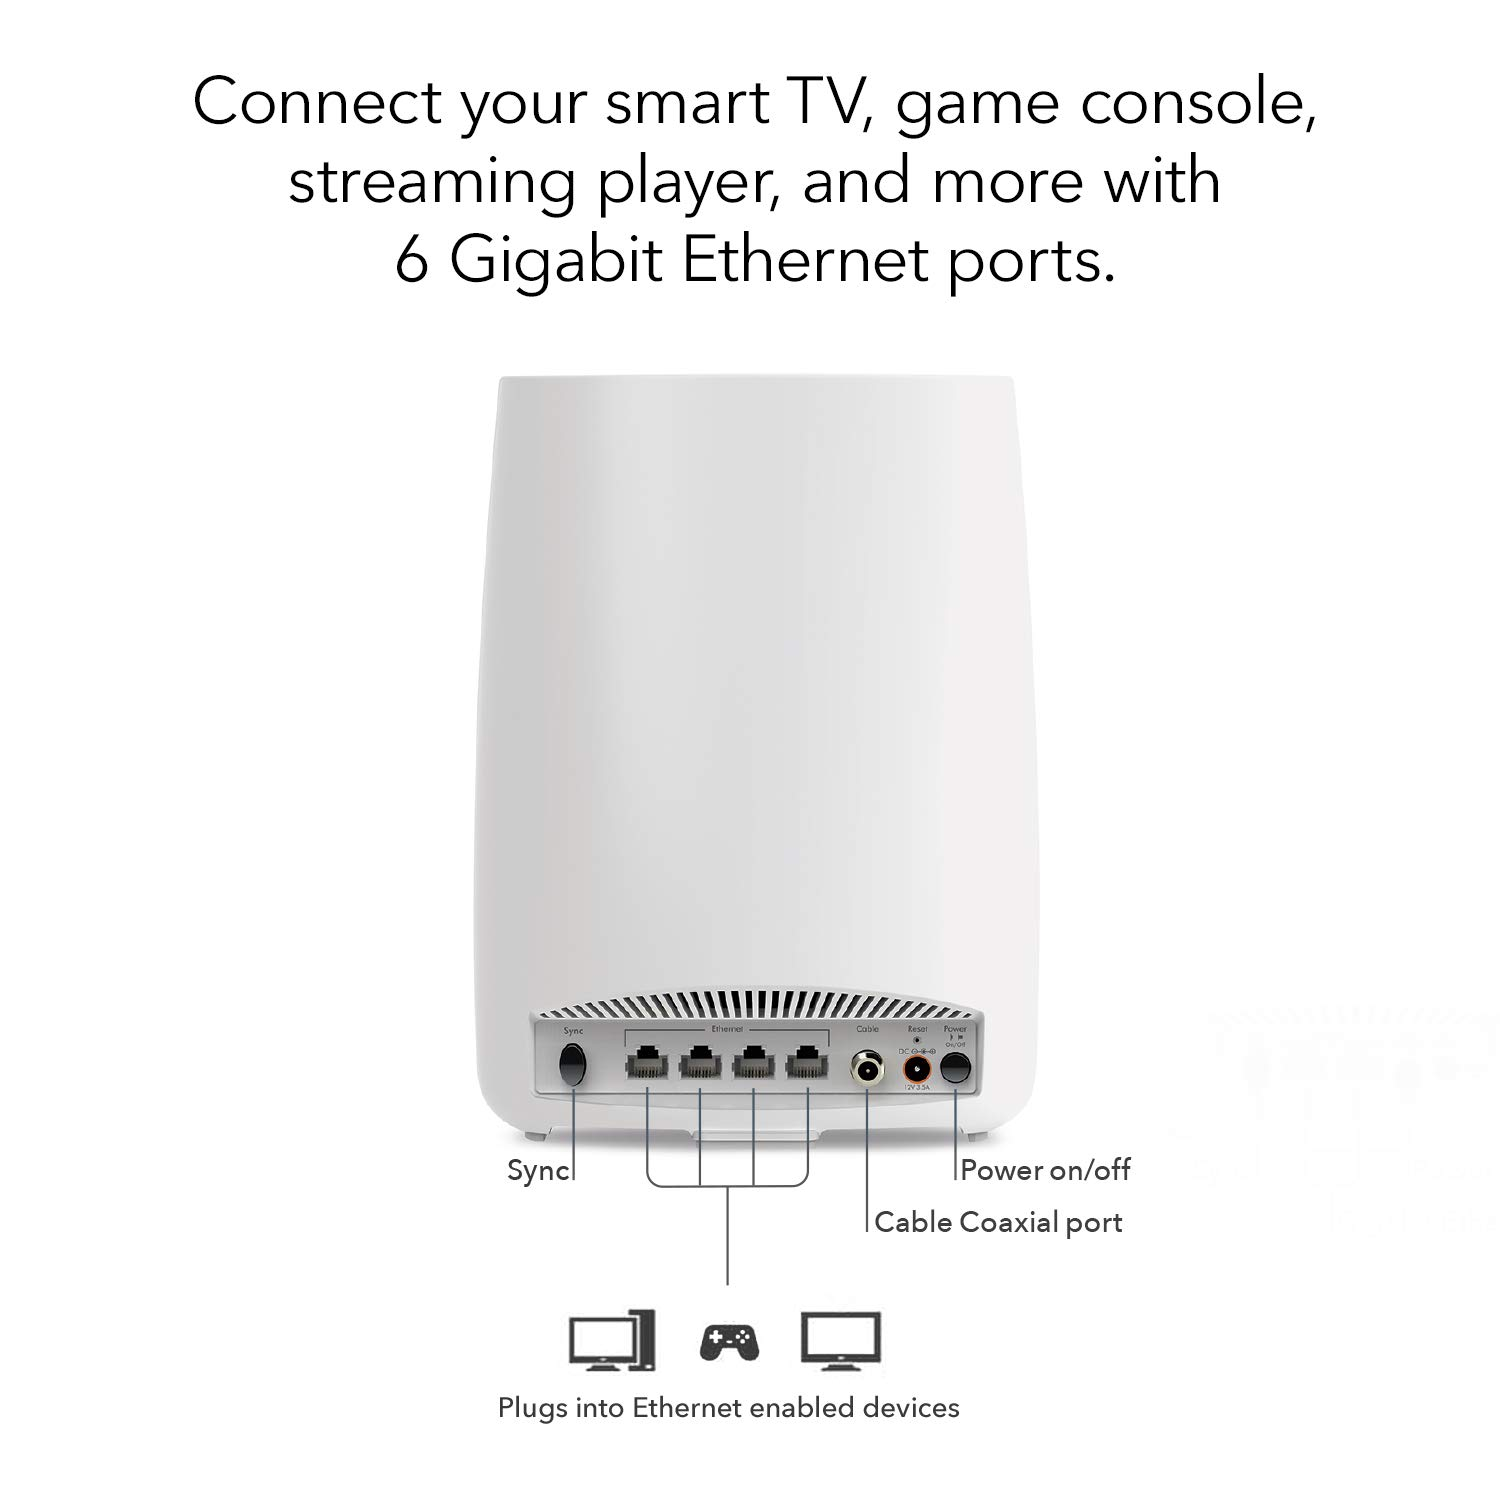 NETGEAR Orbi All-in-One Cable Modem + Whole Home Mesh-Ready WiFi Router - for Internet connectivity and speeds up to 2.2 Gbps Over 2,000 sq. feet, AC2200 (CBR40) by NETGEAR (Image #3)